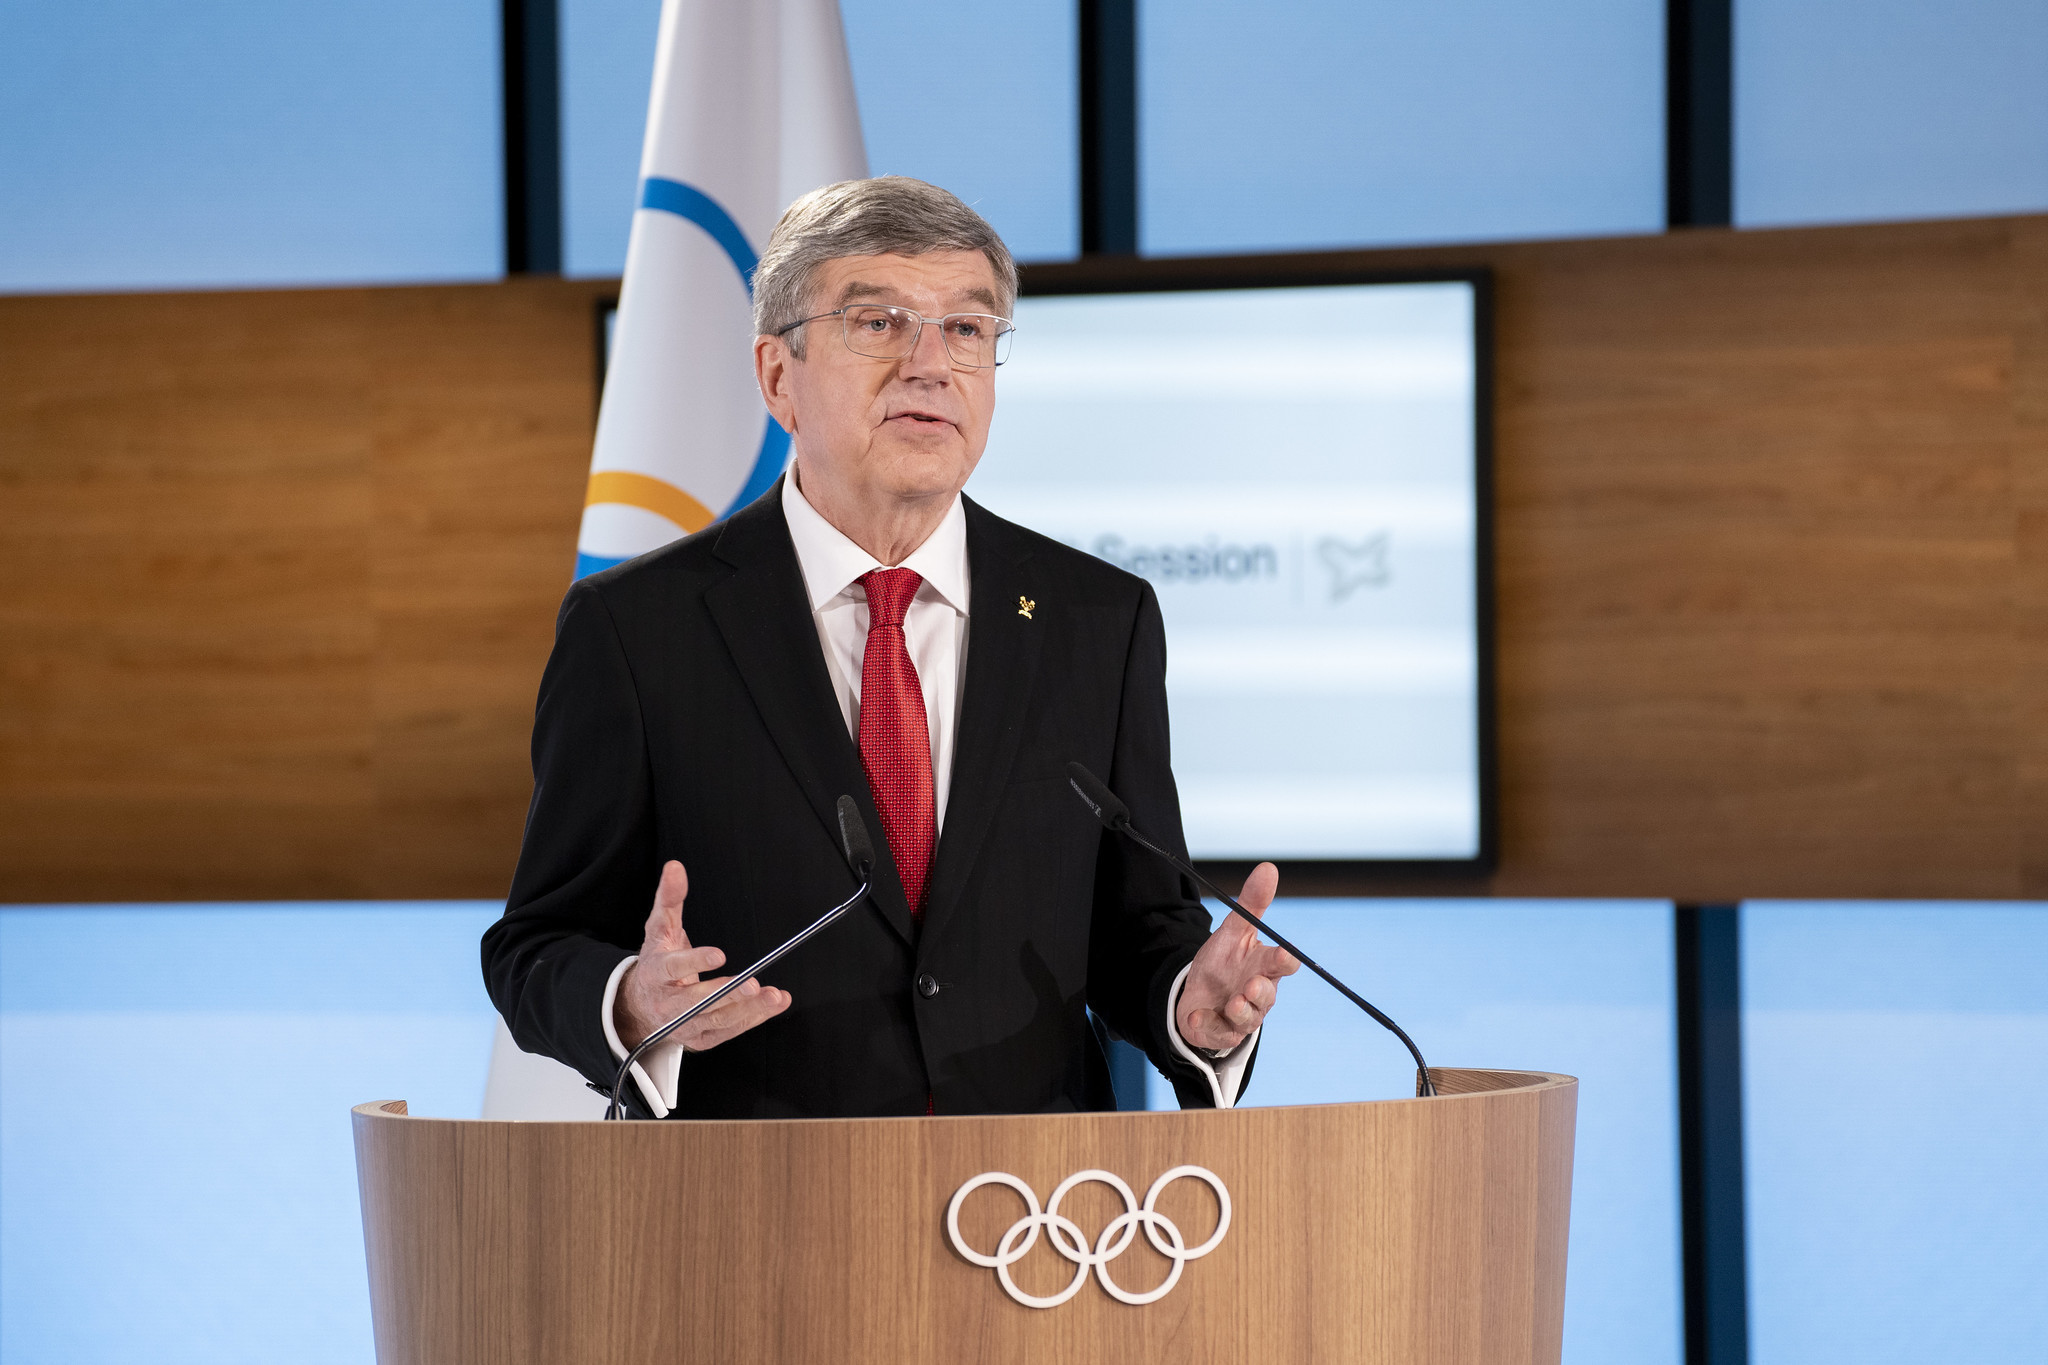 """Bach """"optimistic"""" of Refugee Team participating at 2026 Youth Olympics"""